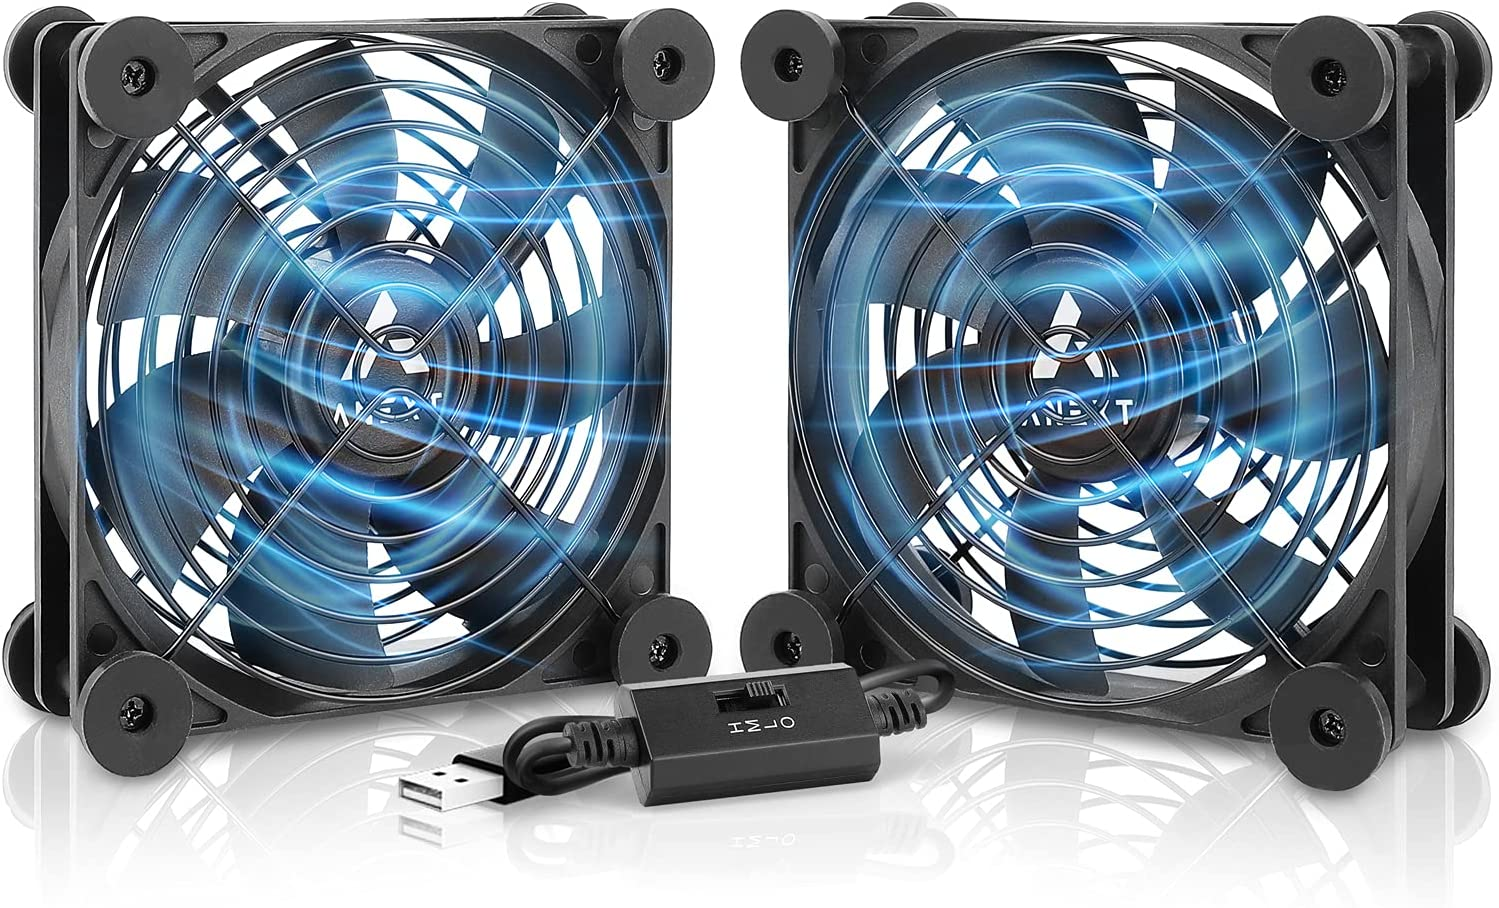 ANEXT, 120mm USB Fan, 120mm Fan, Silent Fan for Receiver DVR Playstation Xbox Computer Cabinet Cooling, 2 Packs(Black,1x Dual)